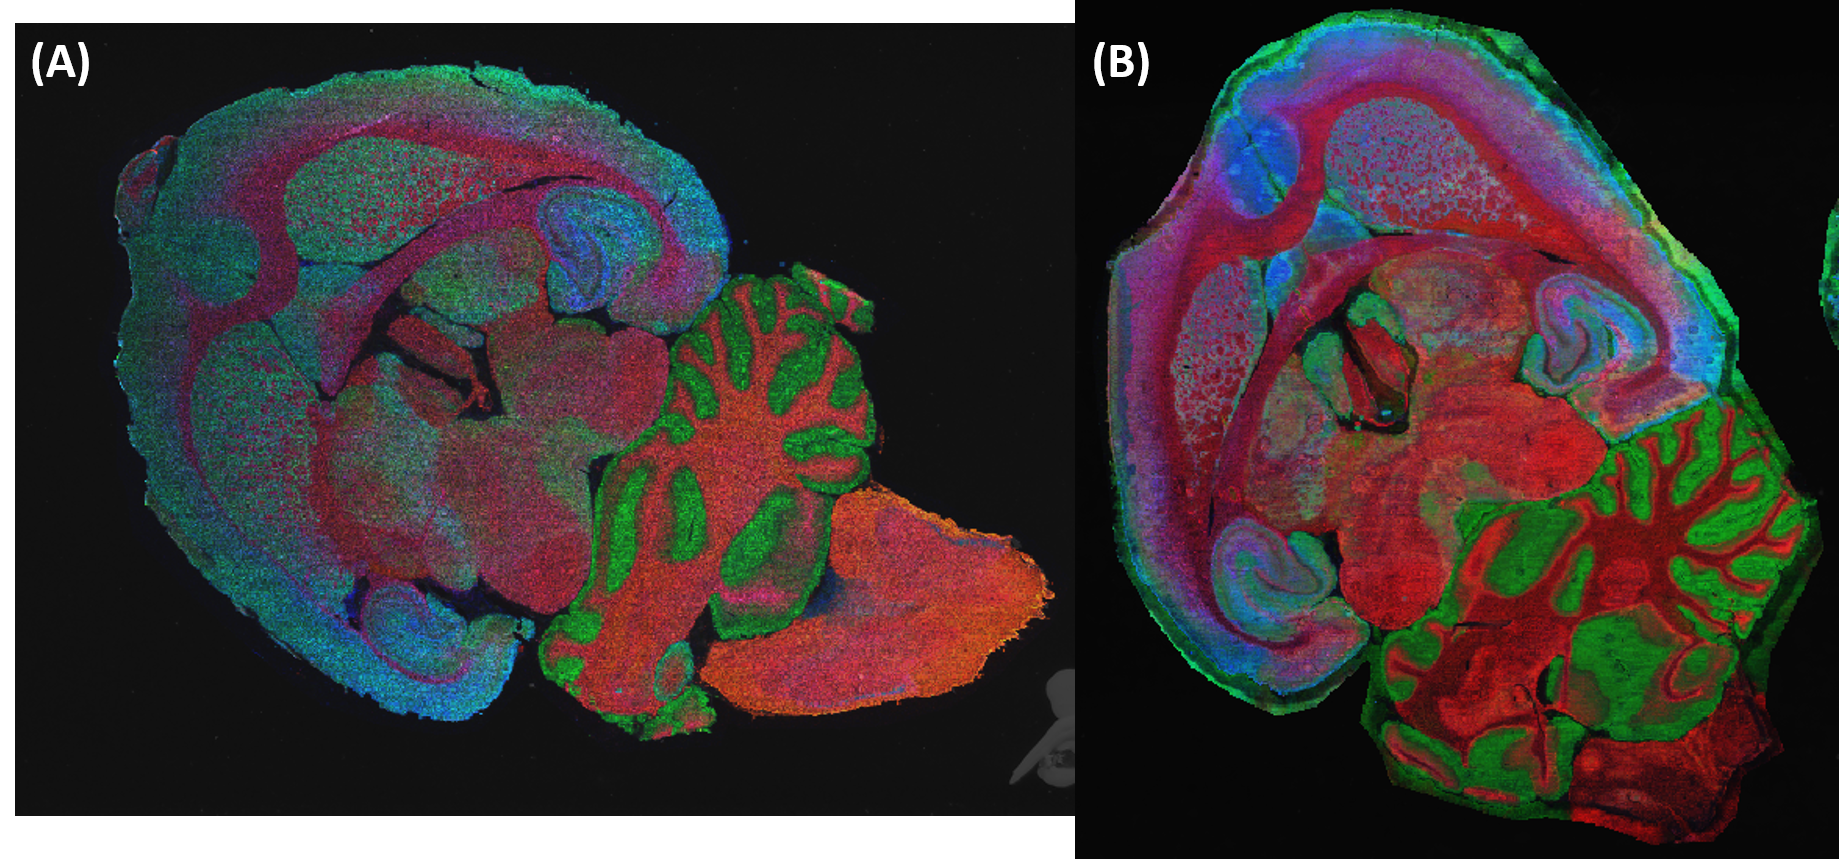 Figure 1.  Ion images of rat brain serial sections (12 μm) prepared using (A) the HTX TM-Sprayer and (B) the HTX Sublimator.